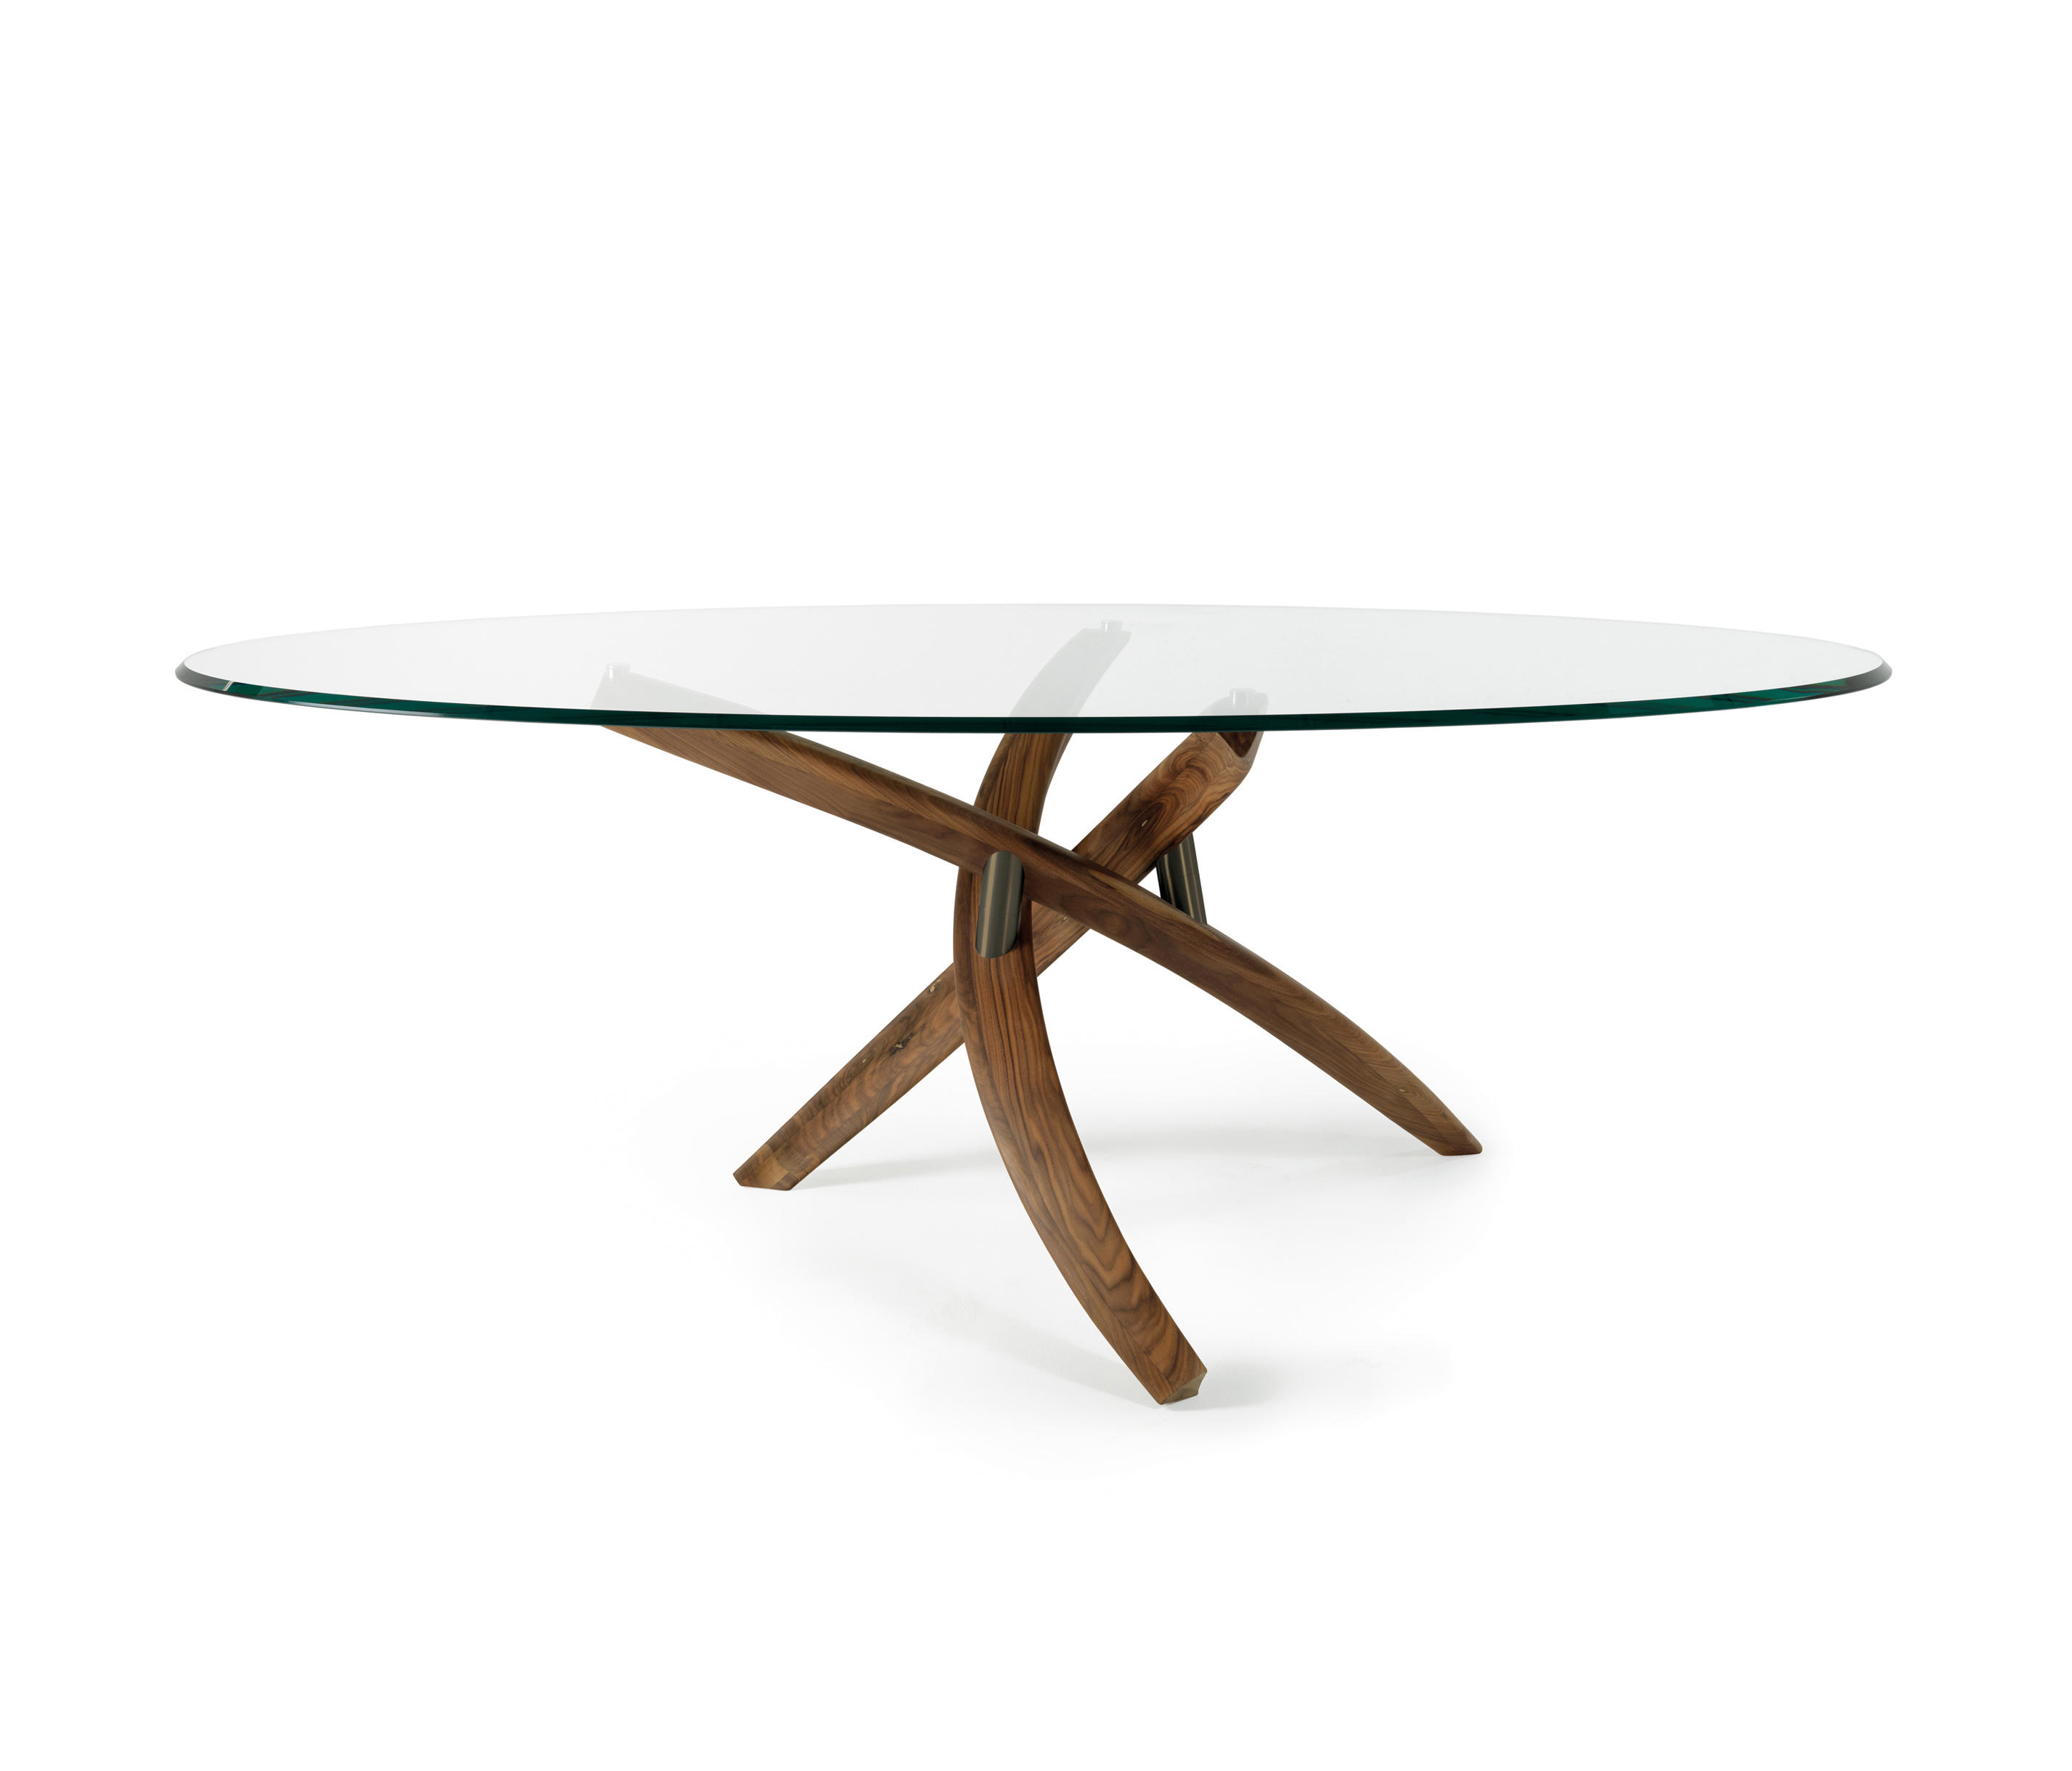 Fili d erba 72 wood dining tables from reflex architonic for Reflex tavoli